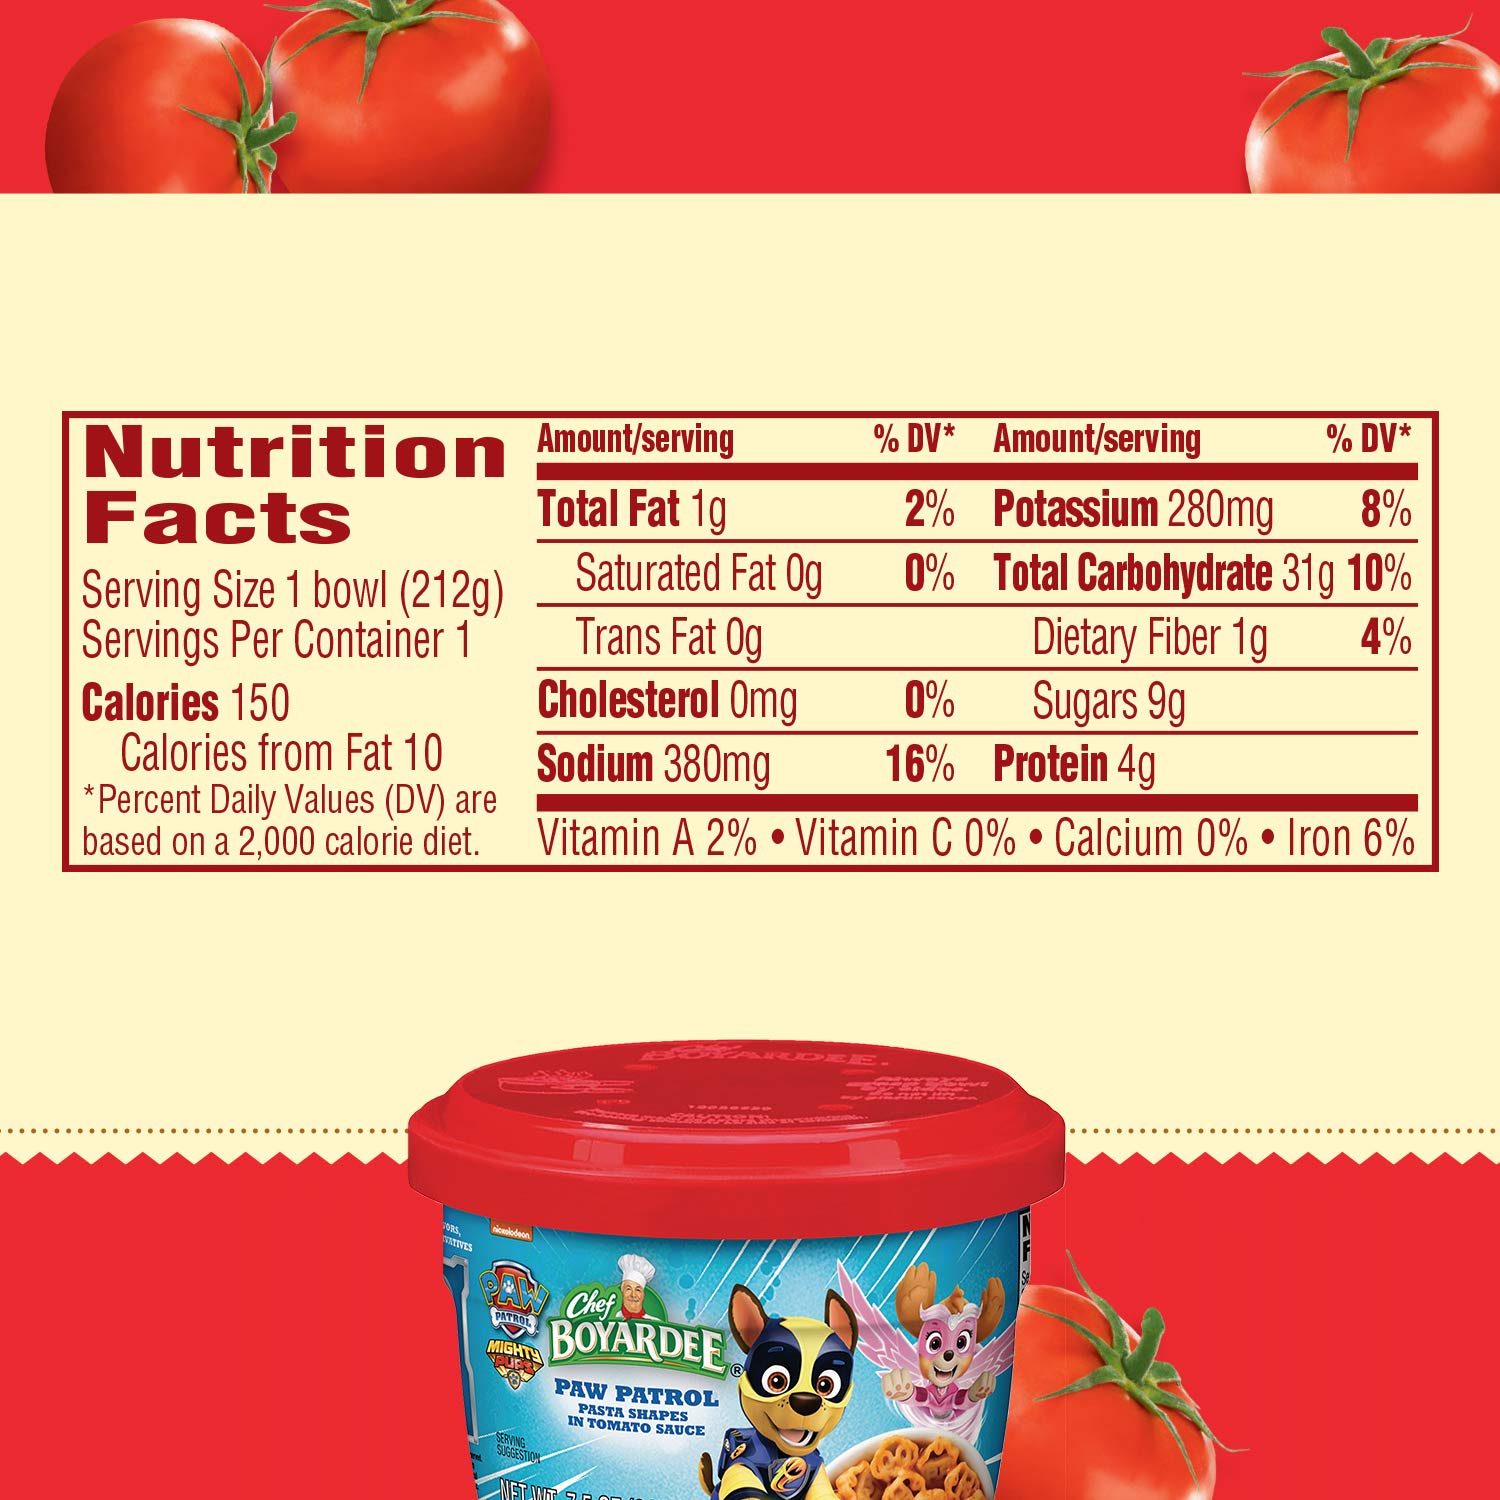 Chef Boyardee Paw Patrol Pasta Shapes in Tomato Sauce, Microwavable Bowl, 7.5 oz, Pack of 12